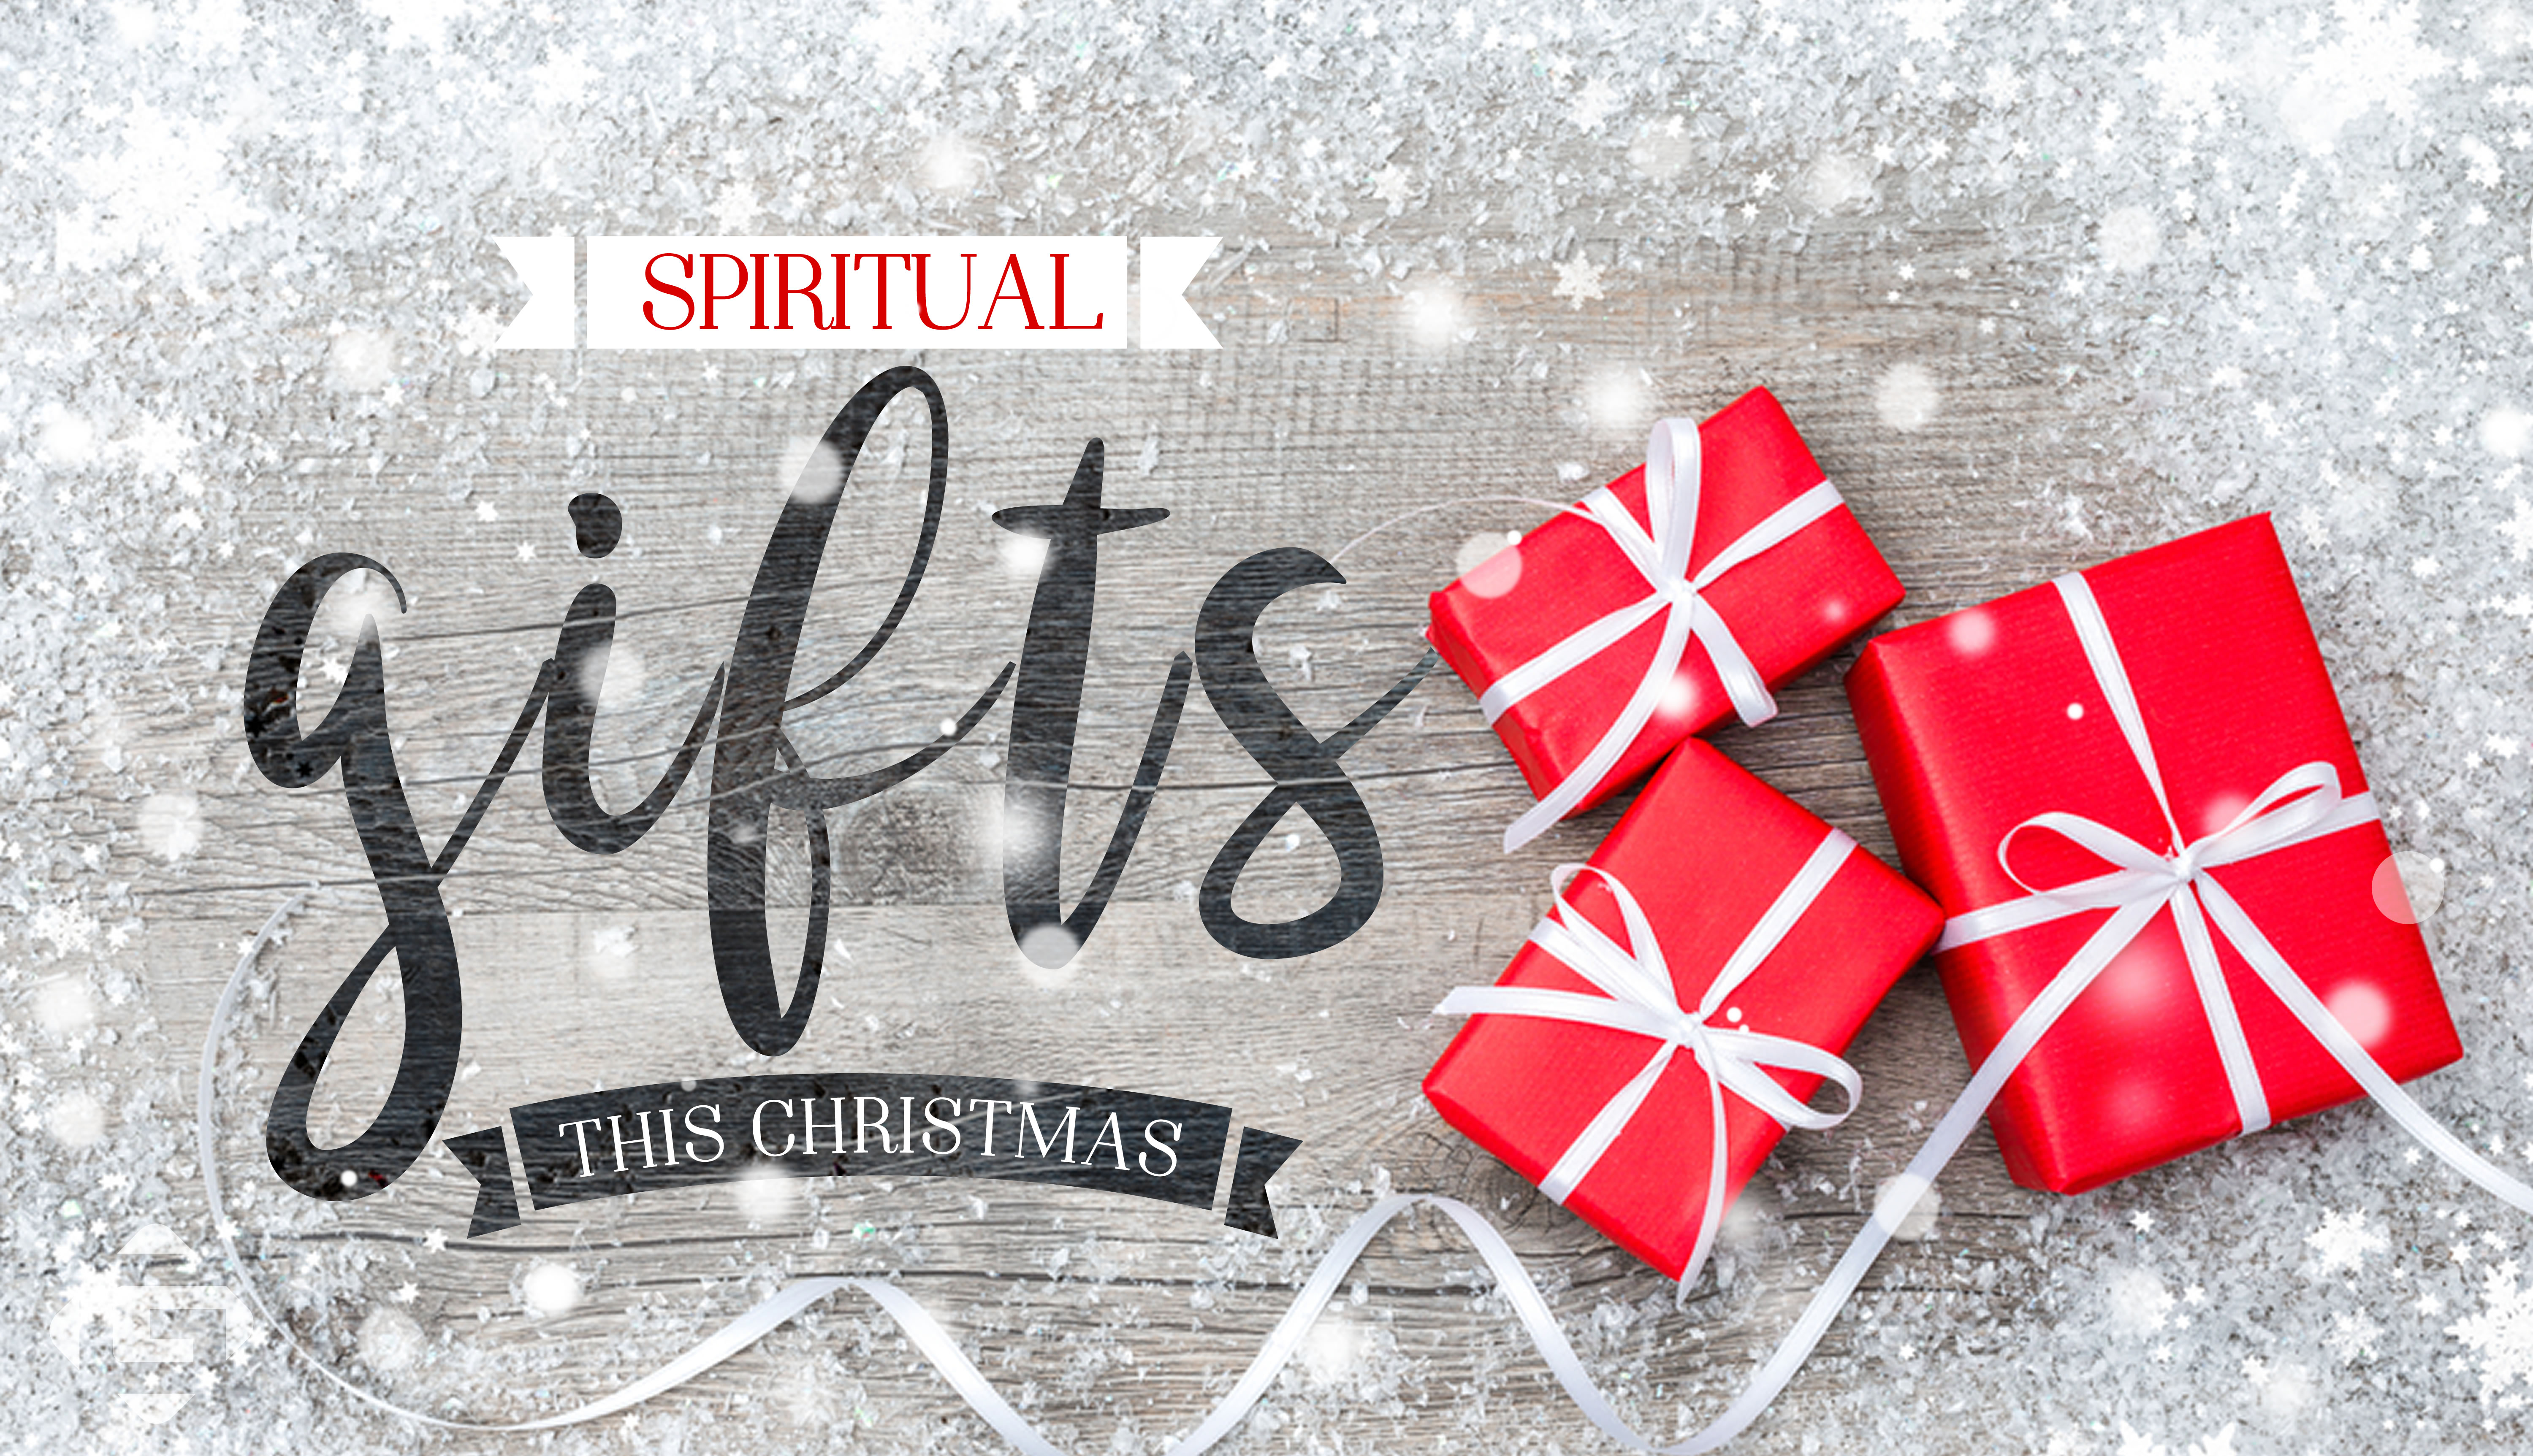 Spiritual Gifts – Church Sermon Series Ideas